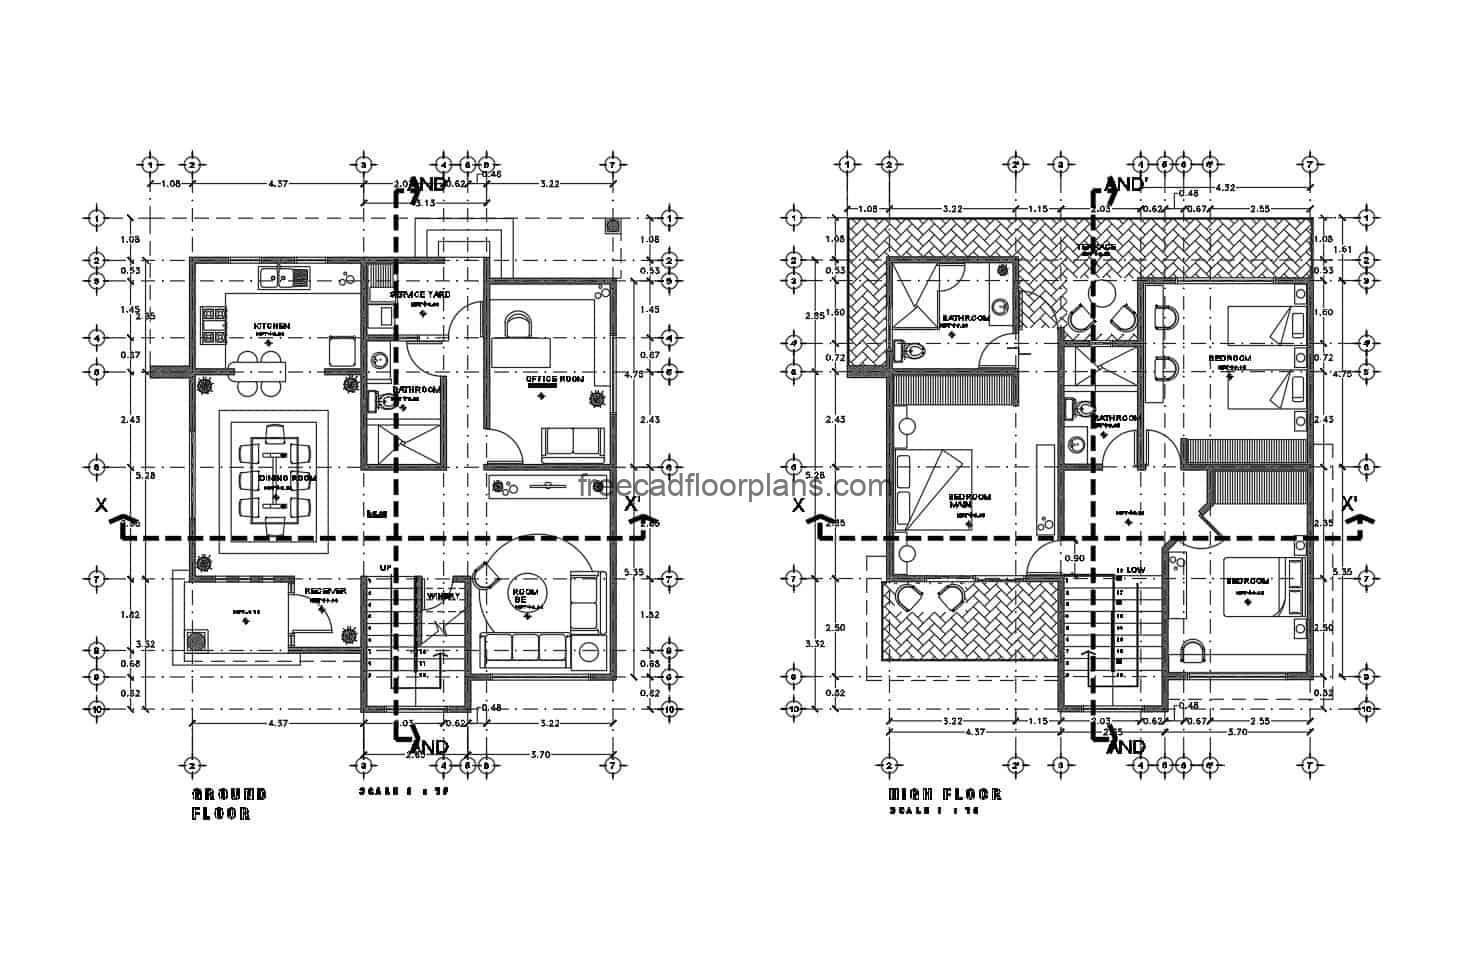 Architectural project of two-level residence, plans drawn in autocad, with interior blocks in DWG, the house has three rooms and a social area on the first level